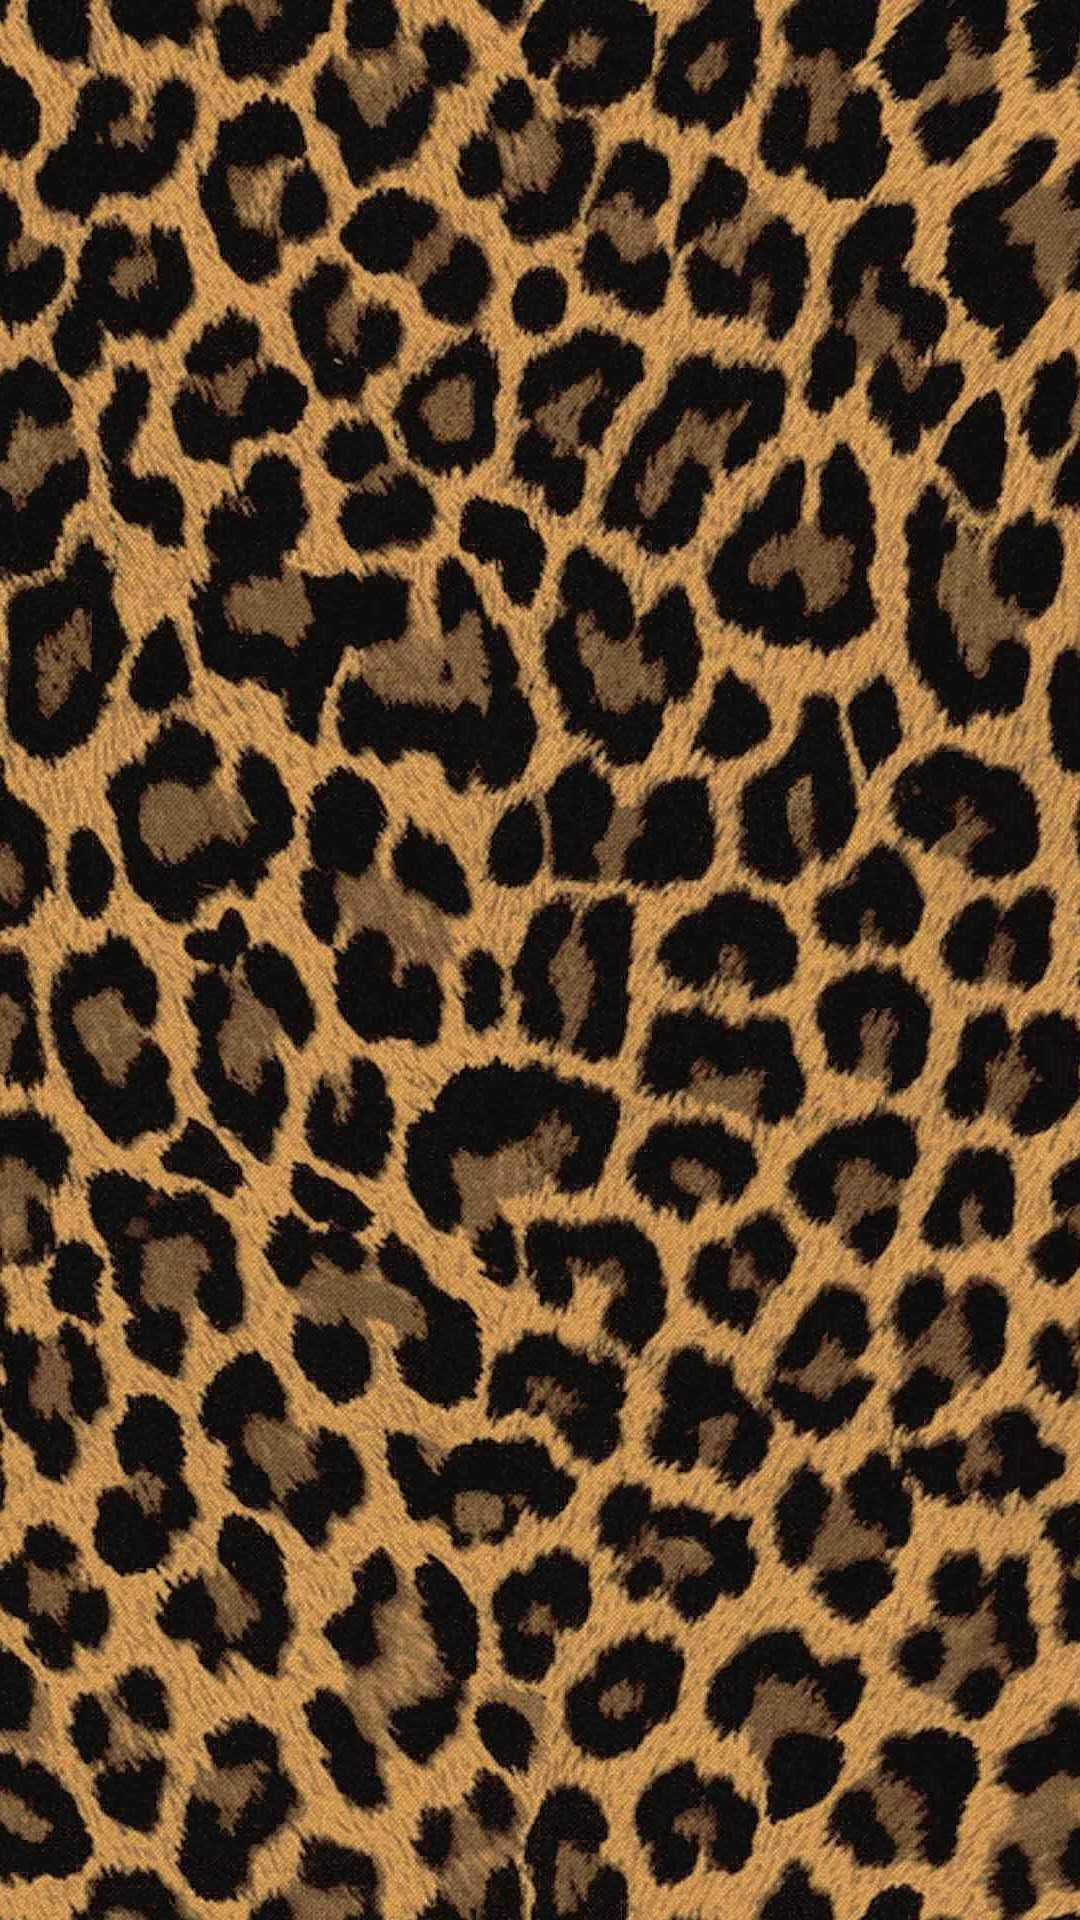 iPhone Leopard Print Wallpaper 1